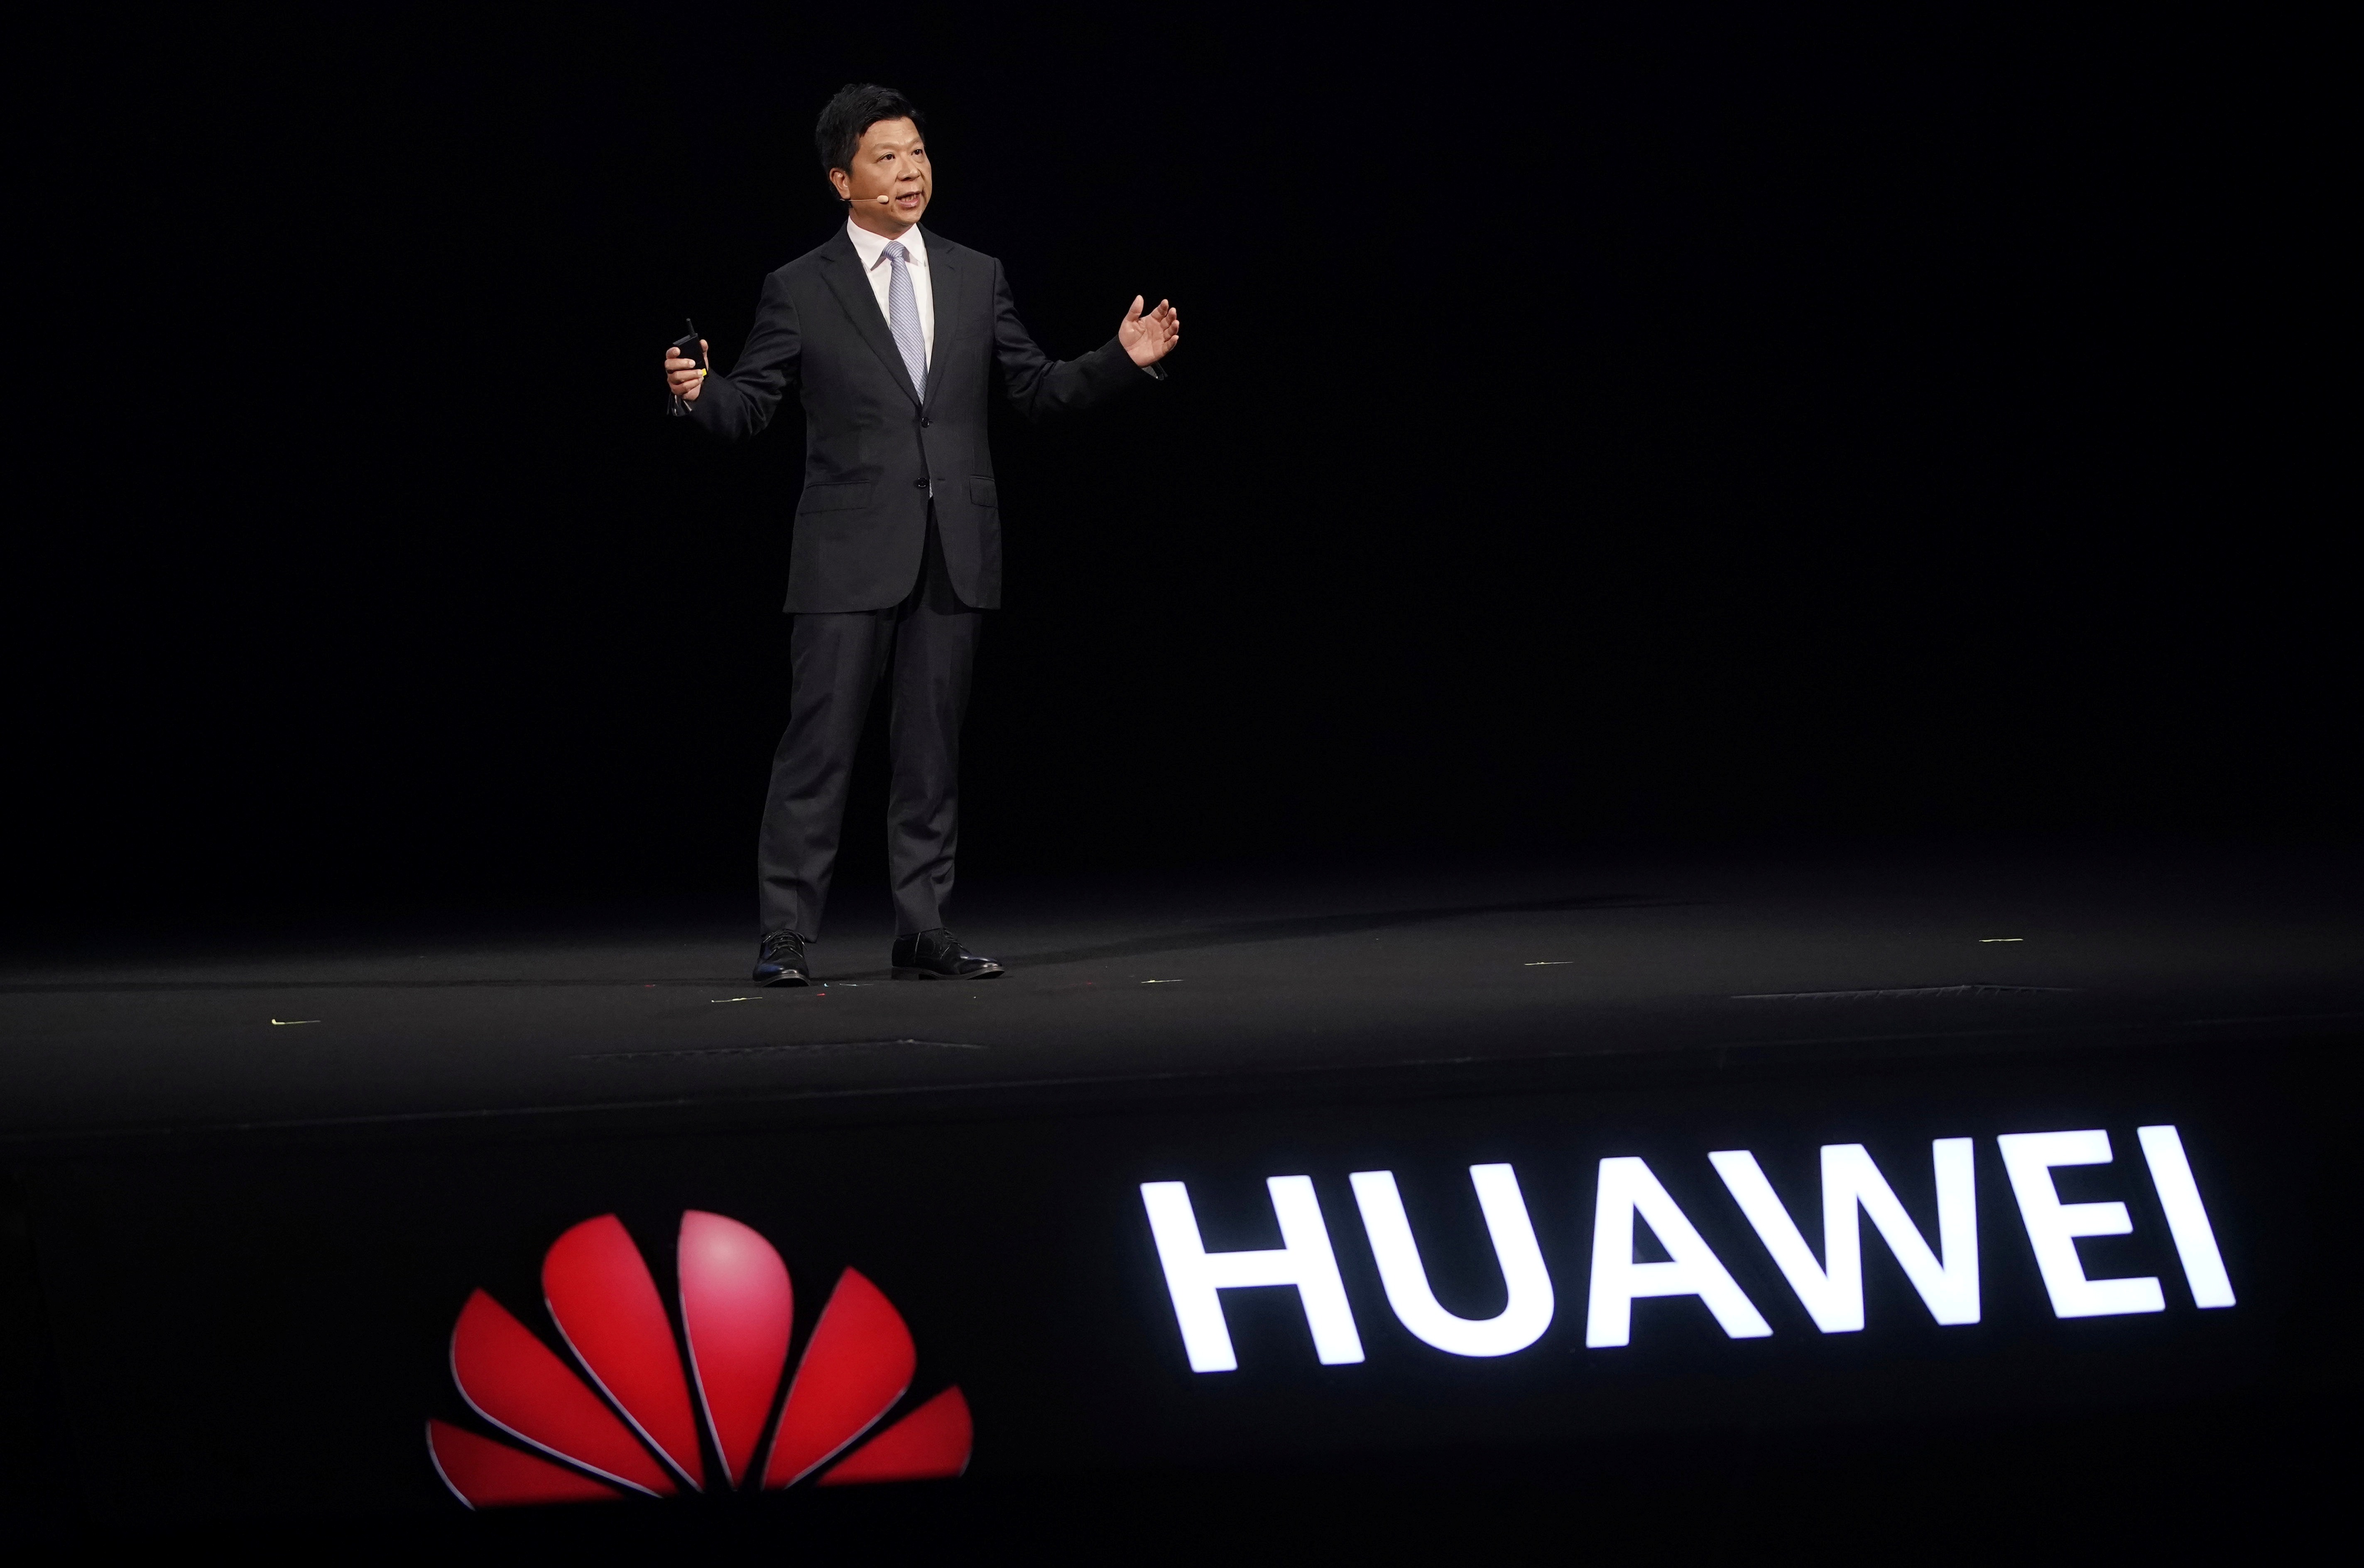 Huawei rotating chairman Guo Ping speaks at Huawei Connect in Shanghai, China, September 23, 2020. REUTERS/Aly Song